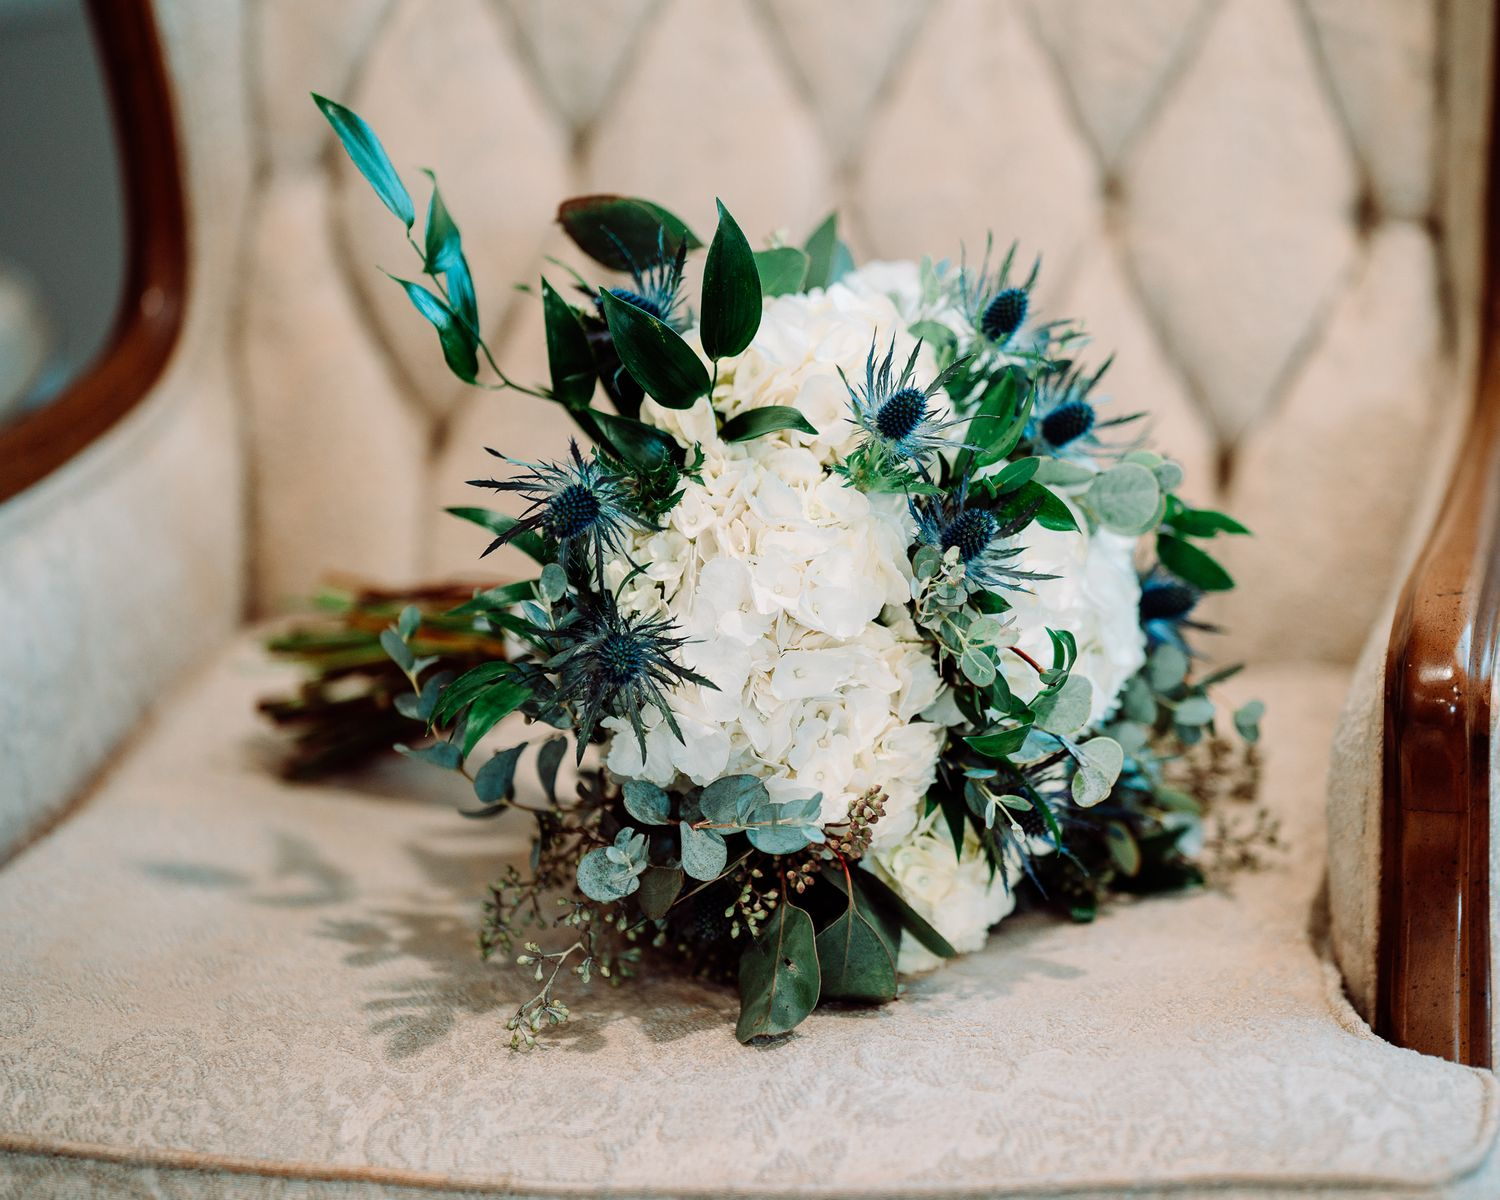 Bride bouquet at The Blessed Barn in Aynor, SC, by PHV Photo